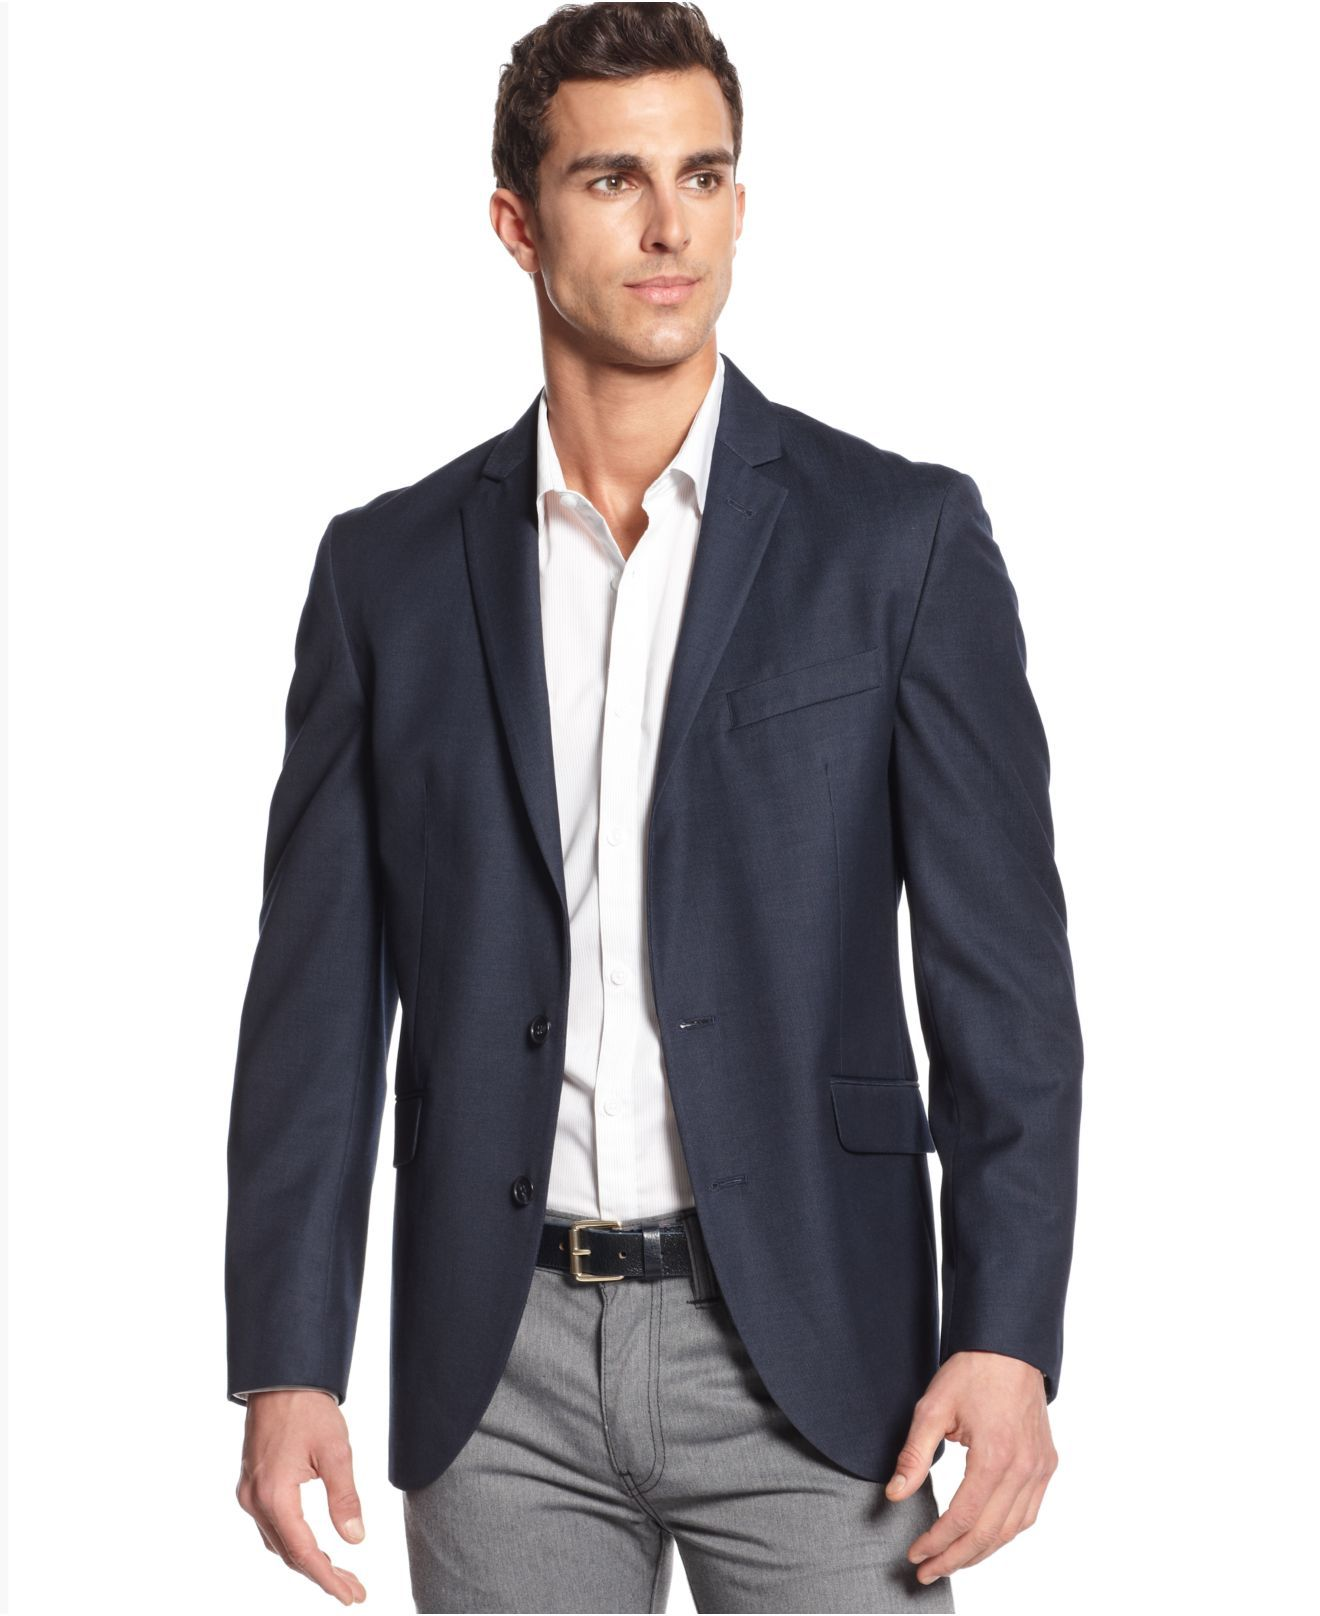 navy sport coat Google Search Navy sport coat, Sport